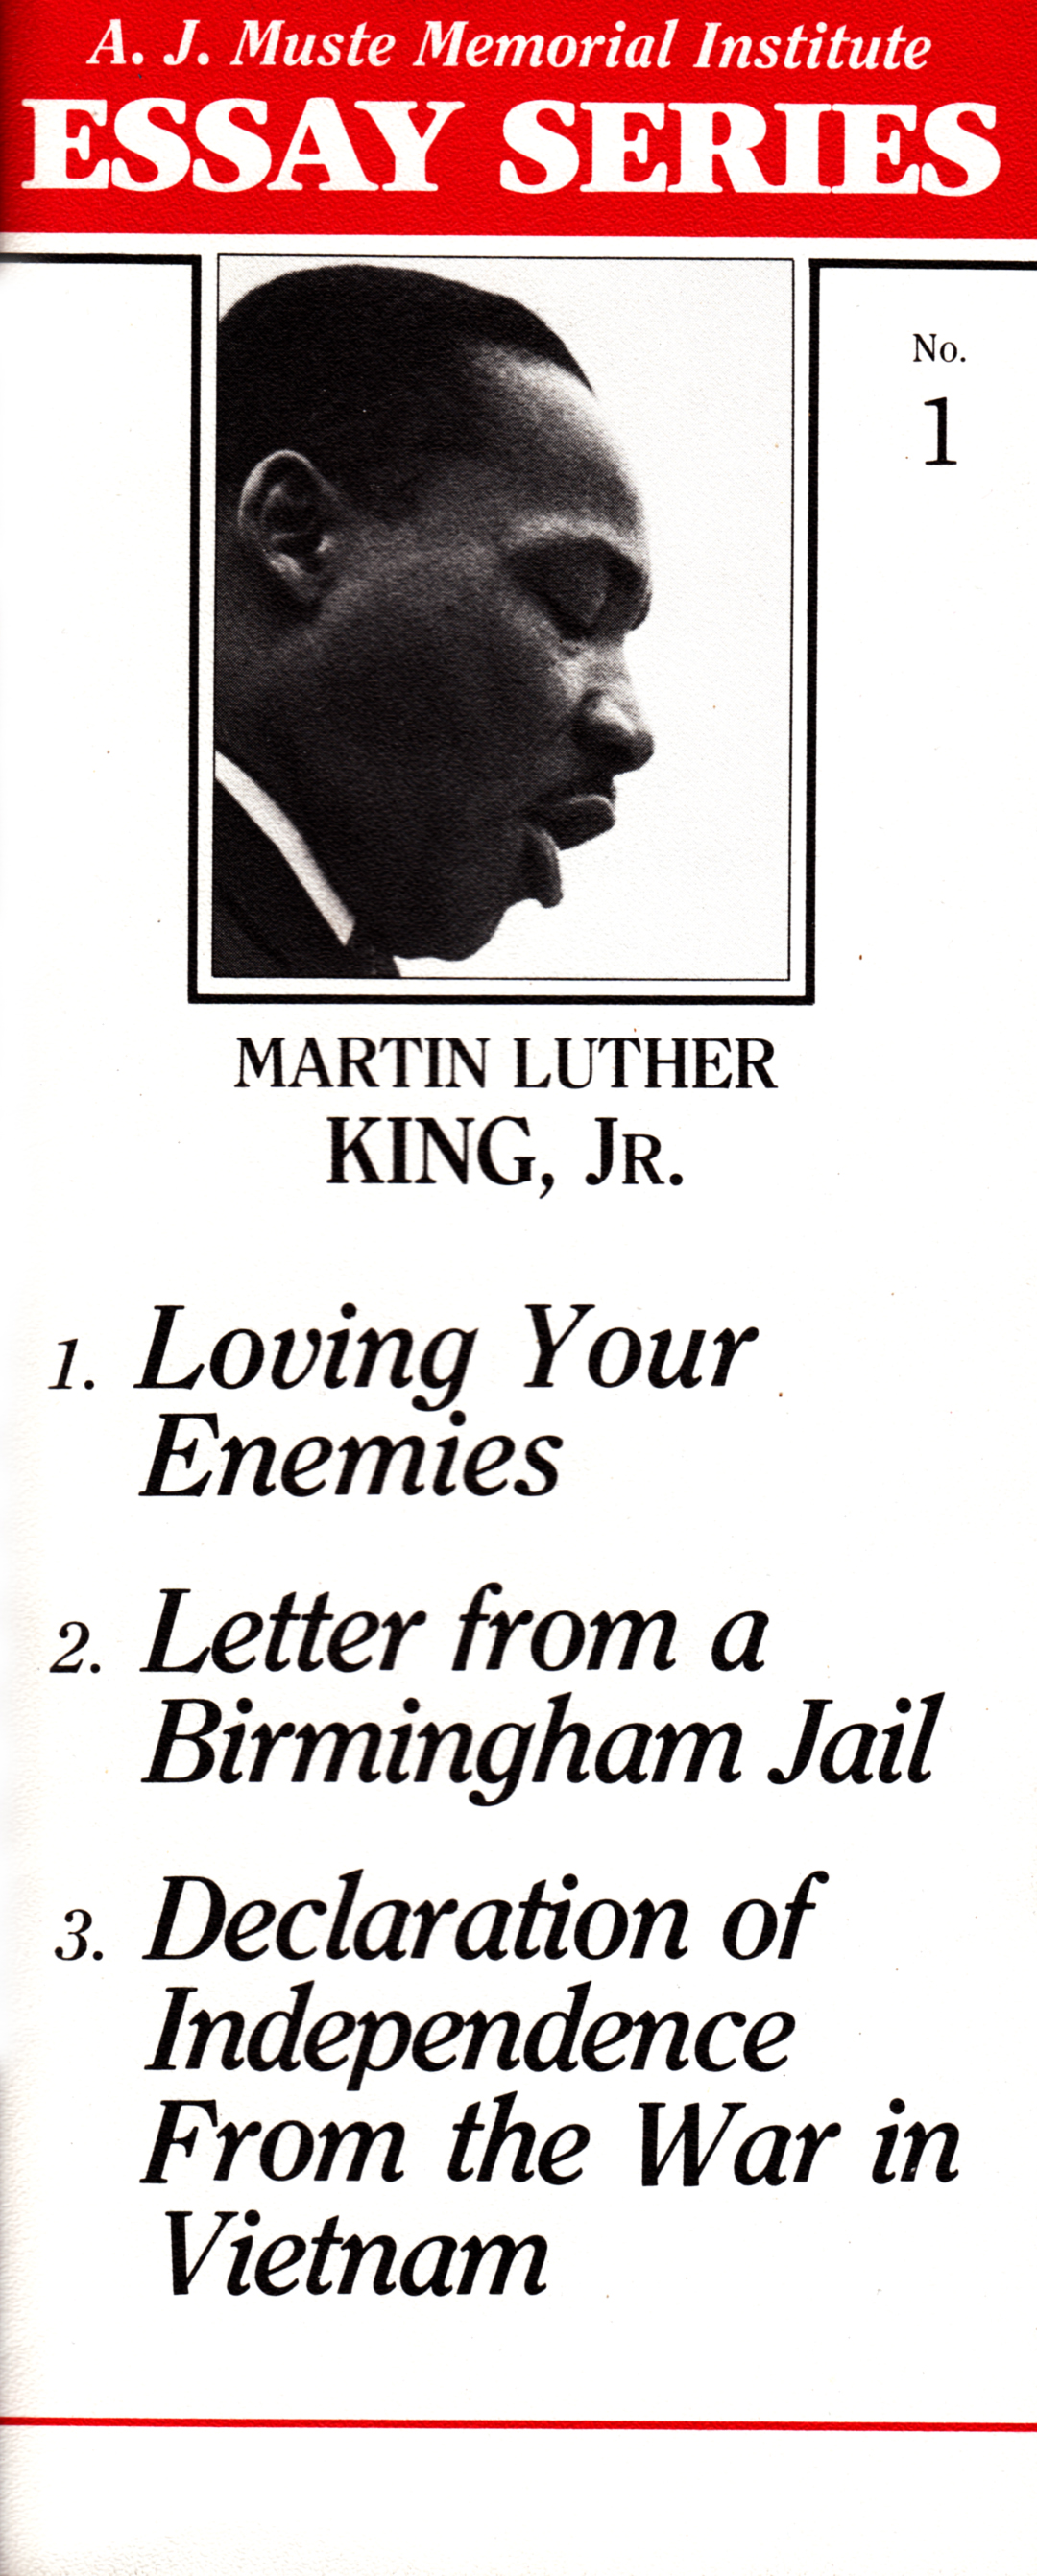 thesis for martin luther king jr letter from birmingham jail The document available for viewing above is from an early draft of the letter, while the audio is from king's reading of the letter later letter from a birmingham jail | the martin luther king, jr, research and education institute.